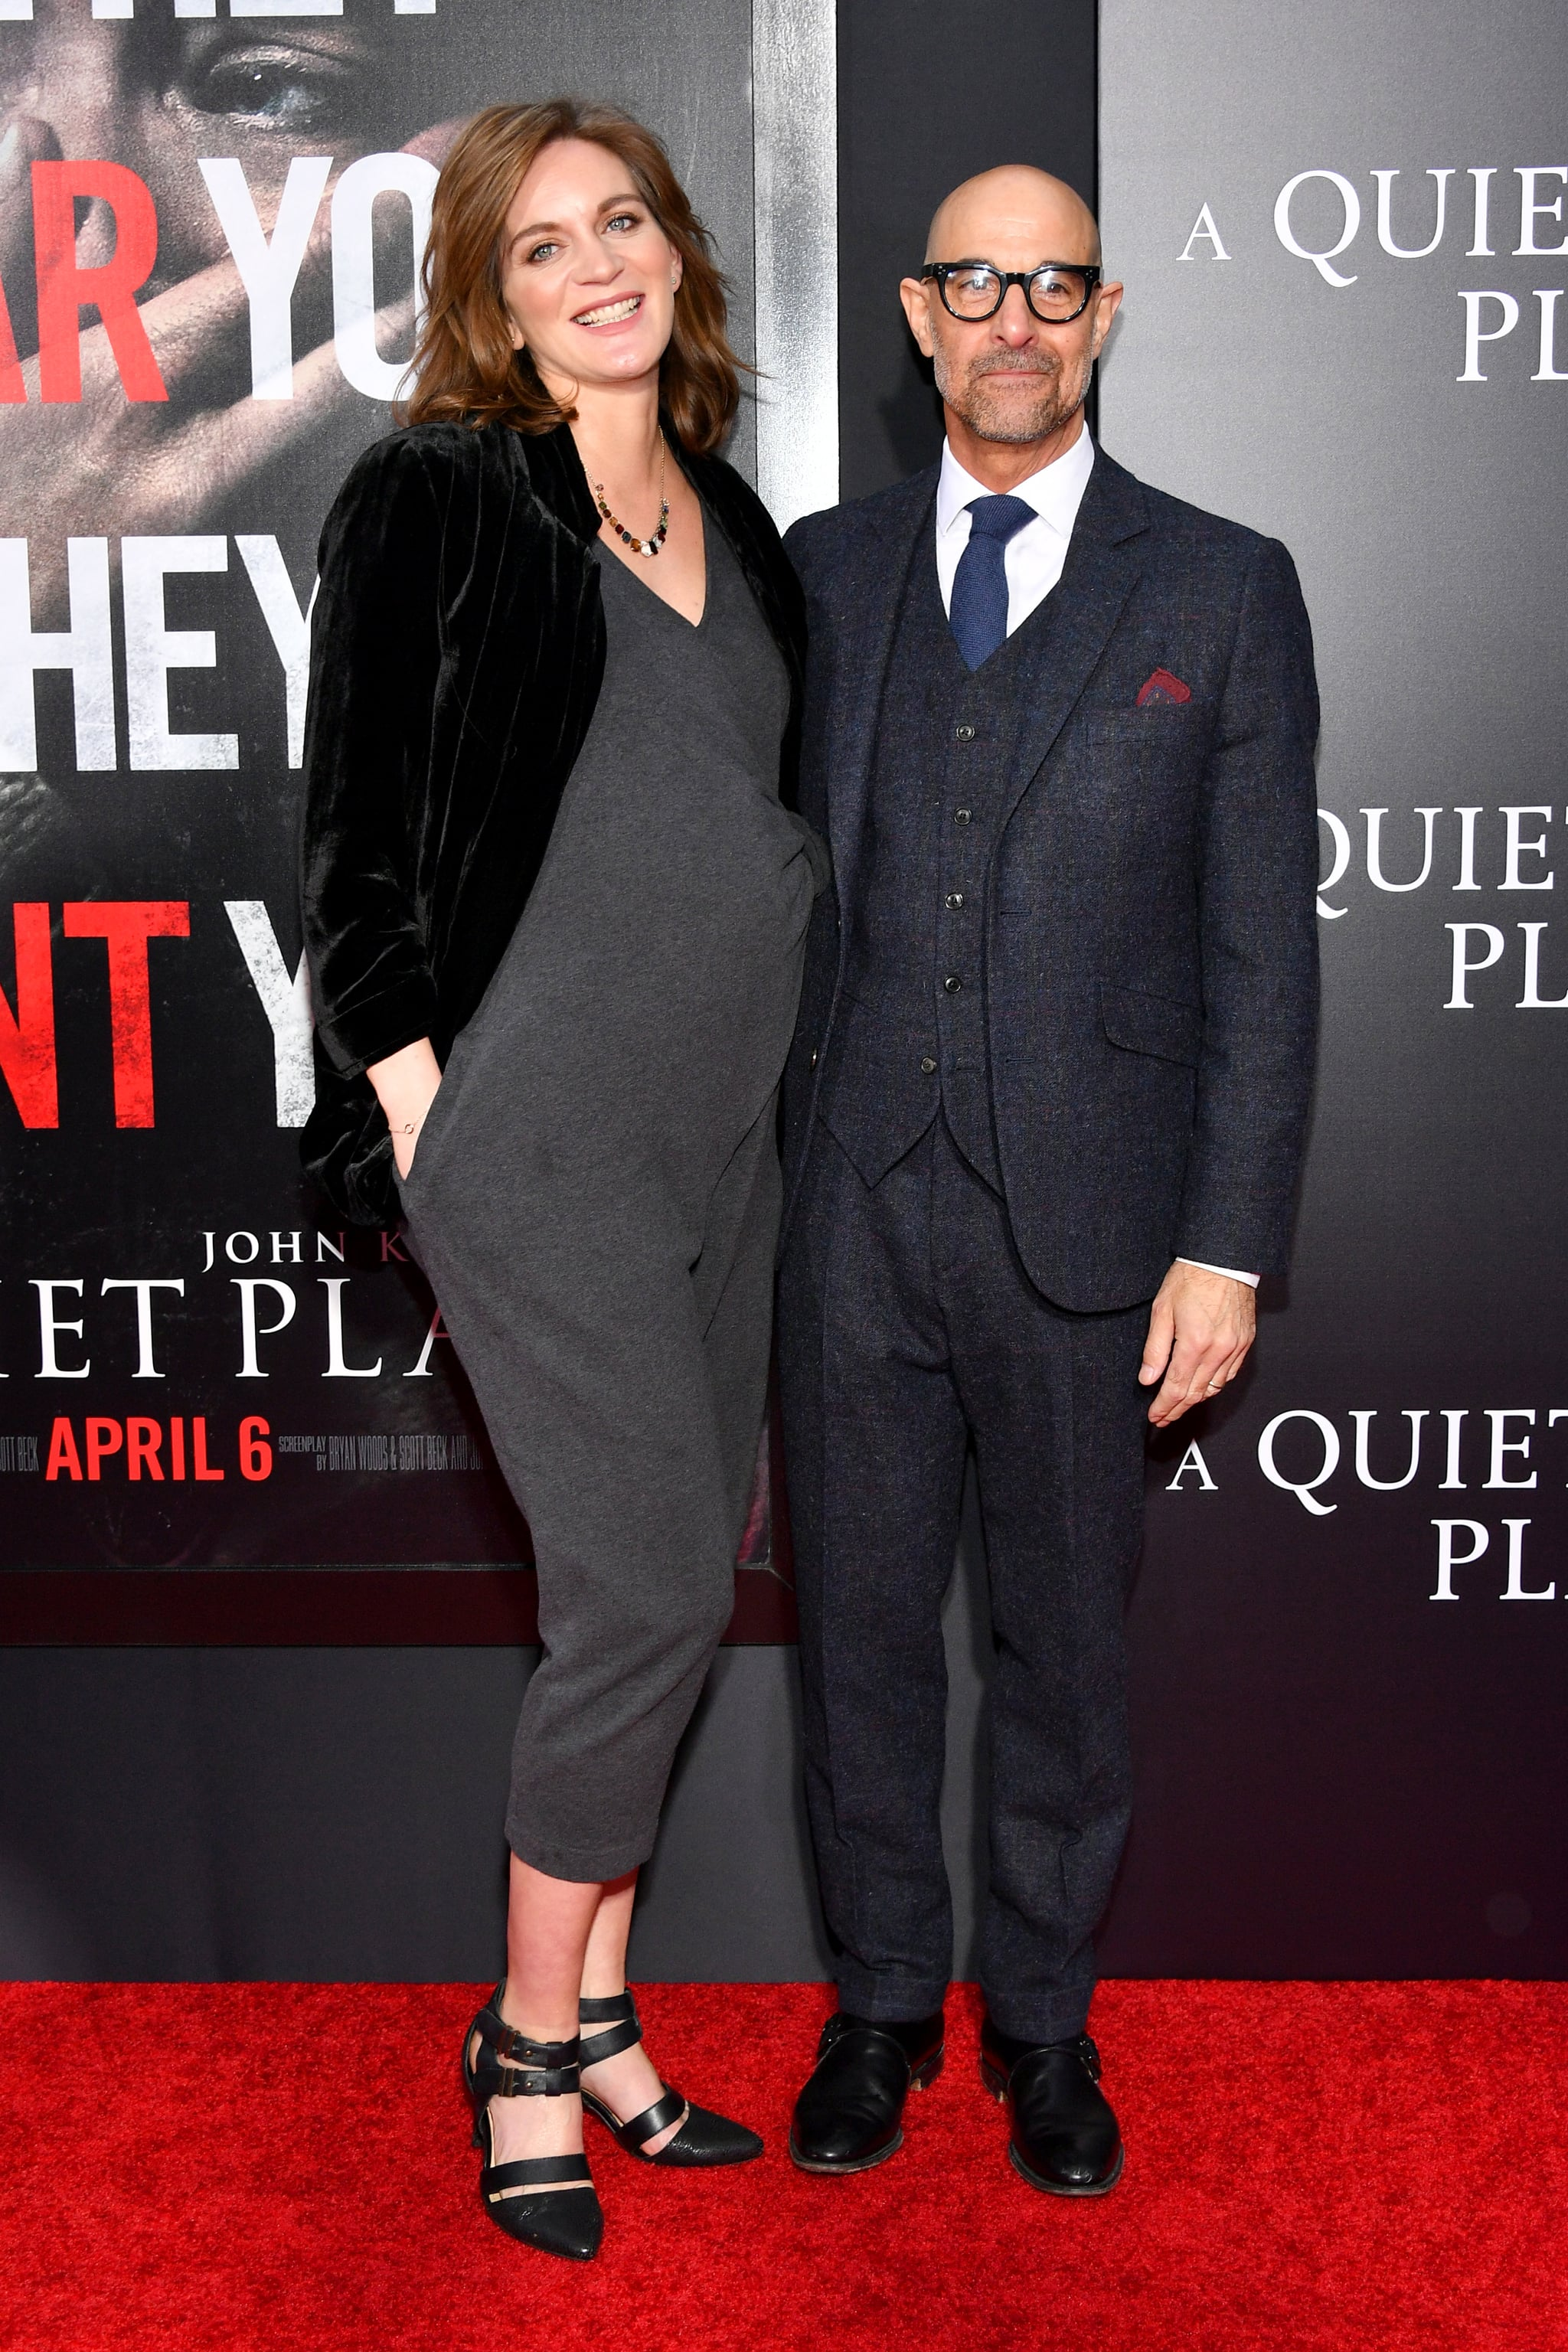 NEW YORK, NY - APRIL 02: Felicity Blunt and Stanley Tucci attends the